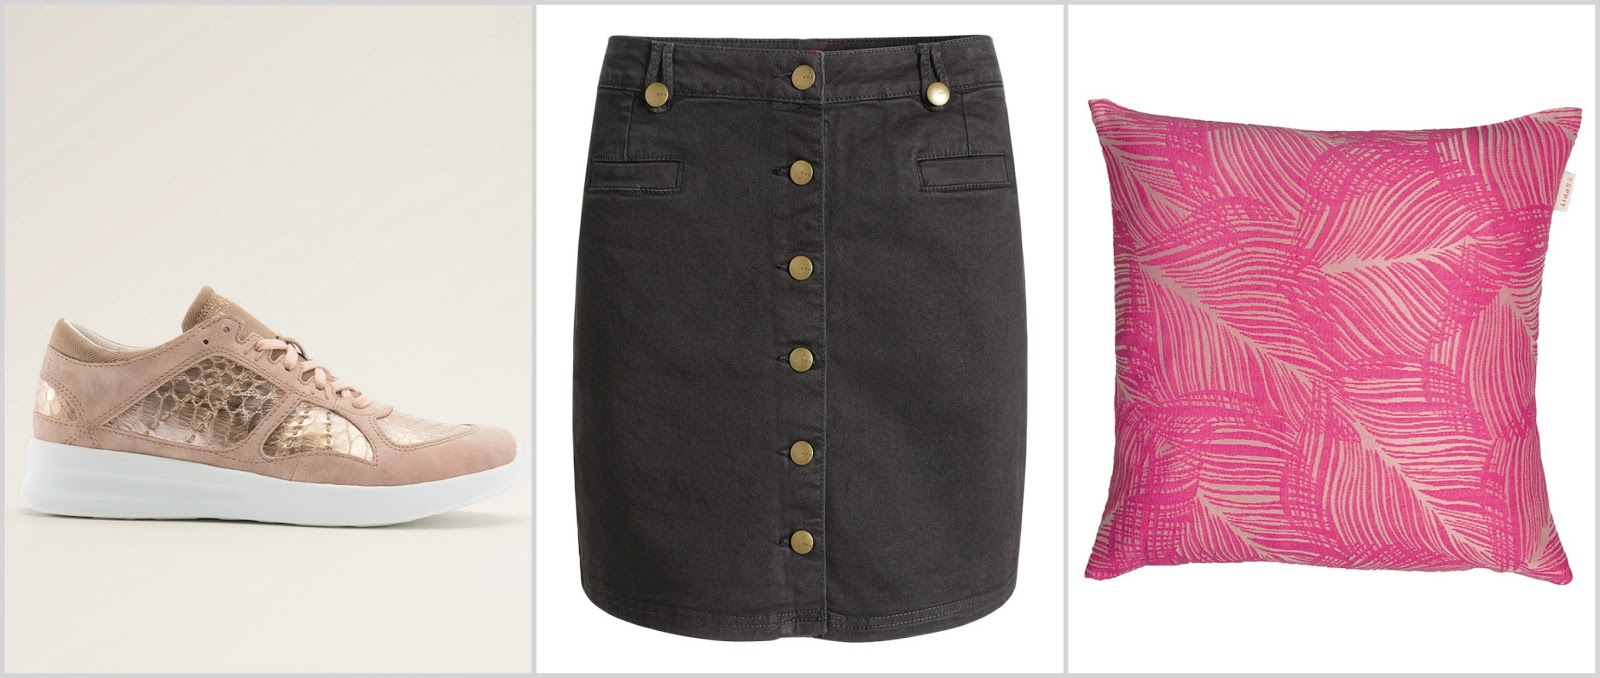 spring esprit wishlist pink rose gold trainers a-line button up skirt pink palm print cushion